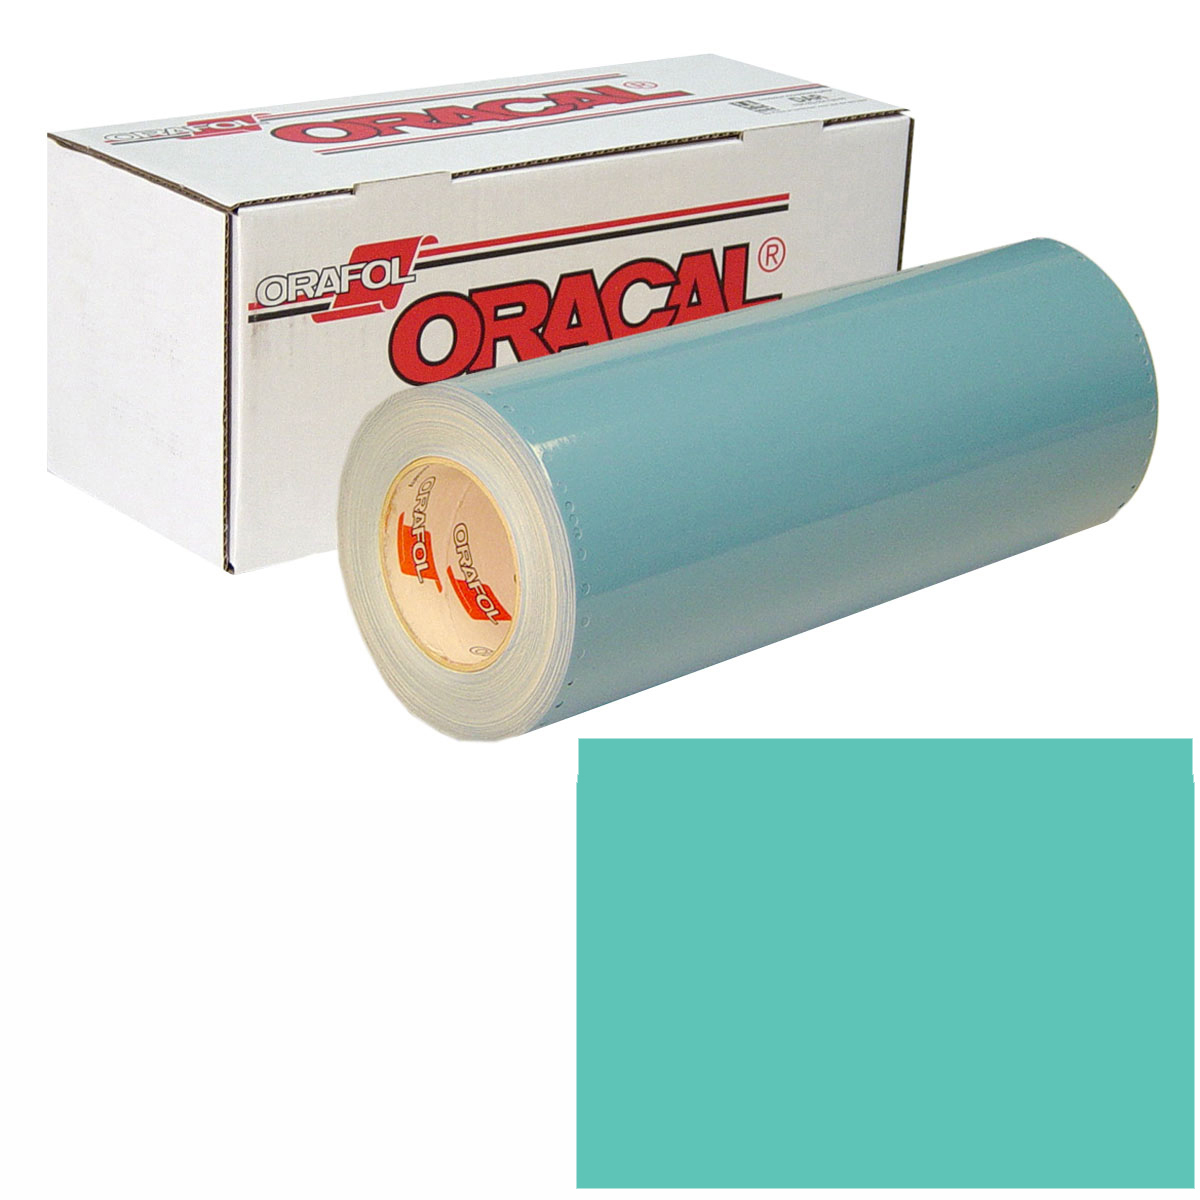 ORACAL 751 30In X 50Yd 055 Mint